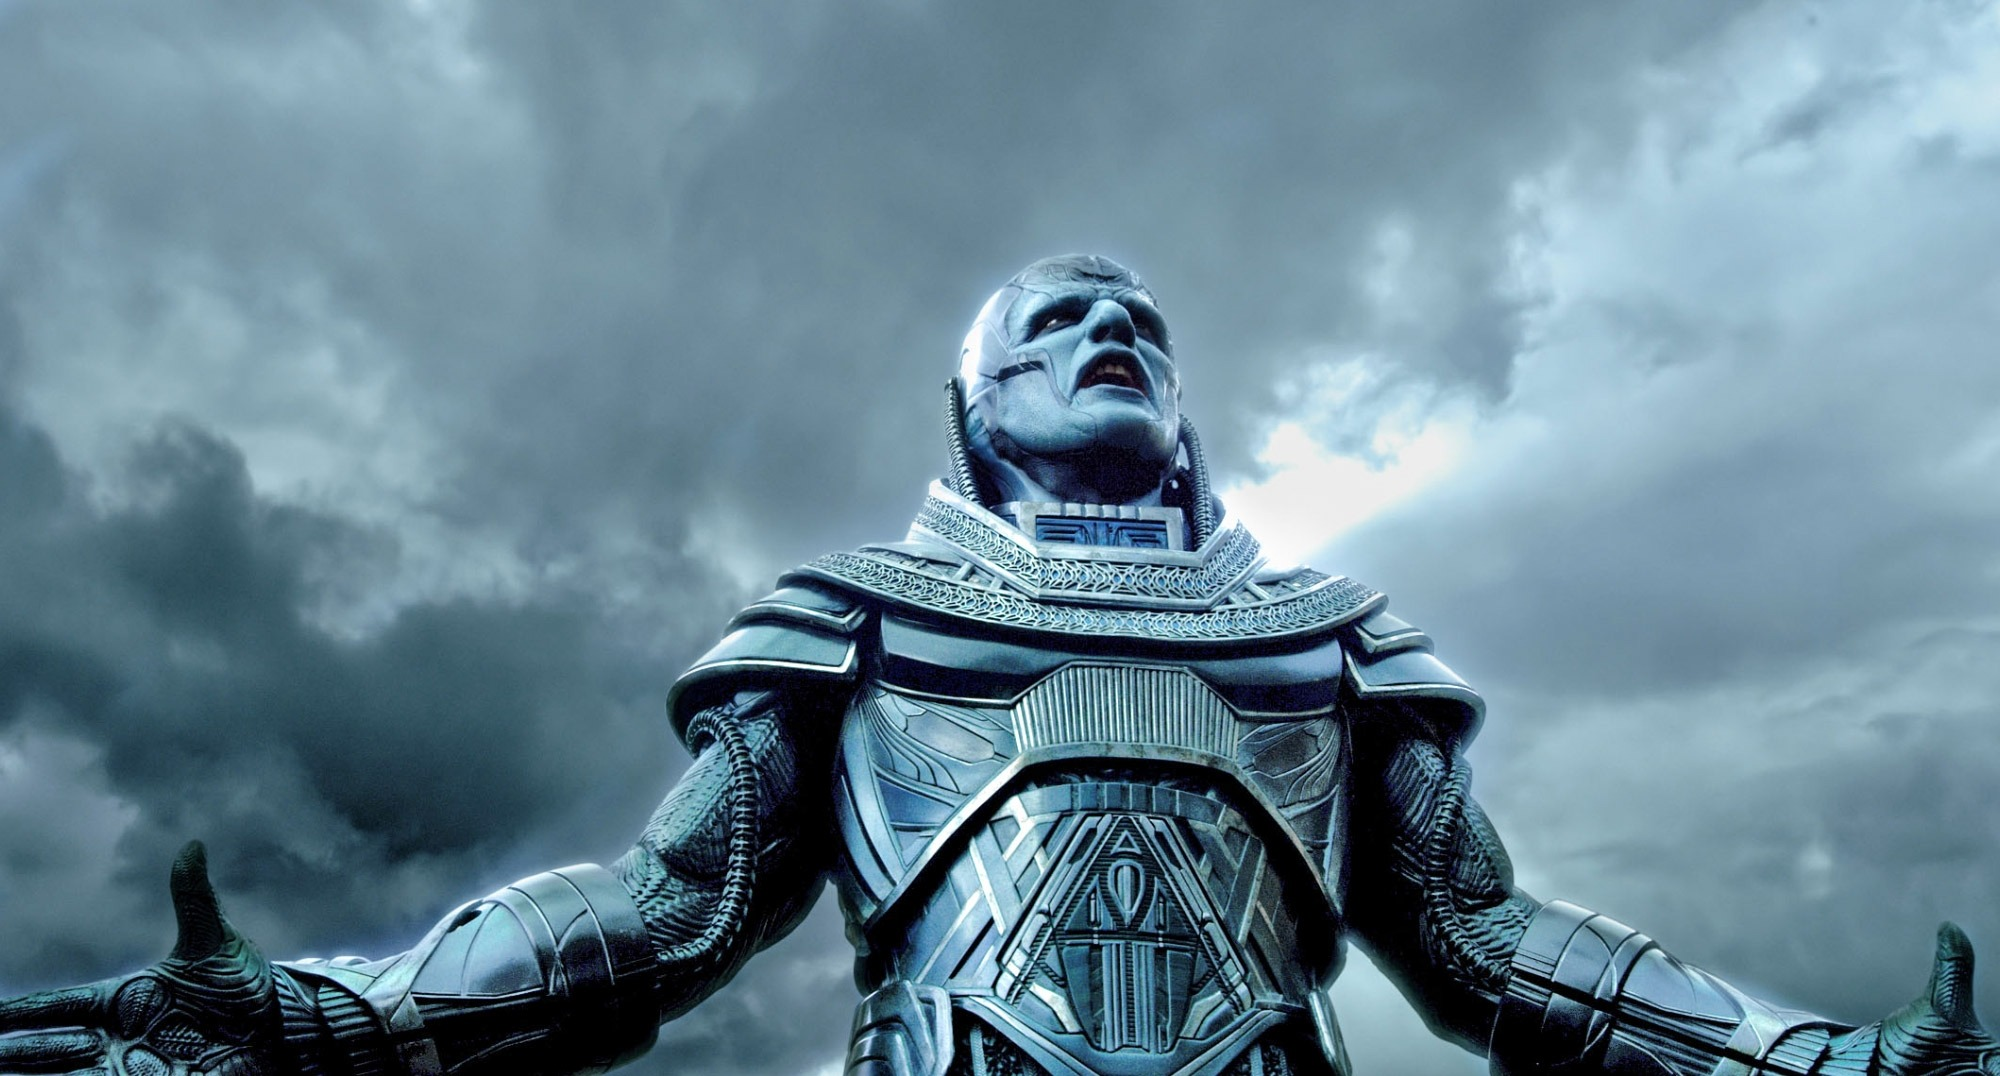 Should Oscar Isaac play Apocalypse again in the MCU?